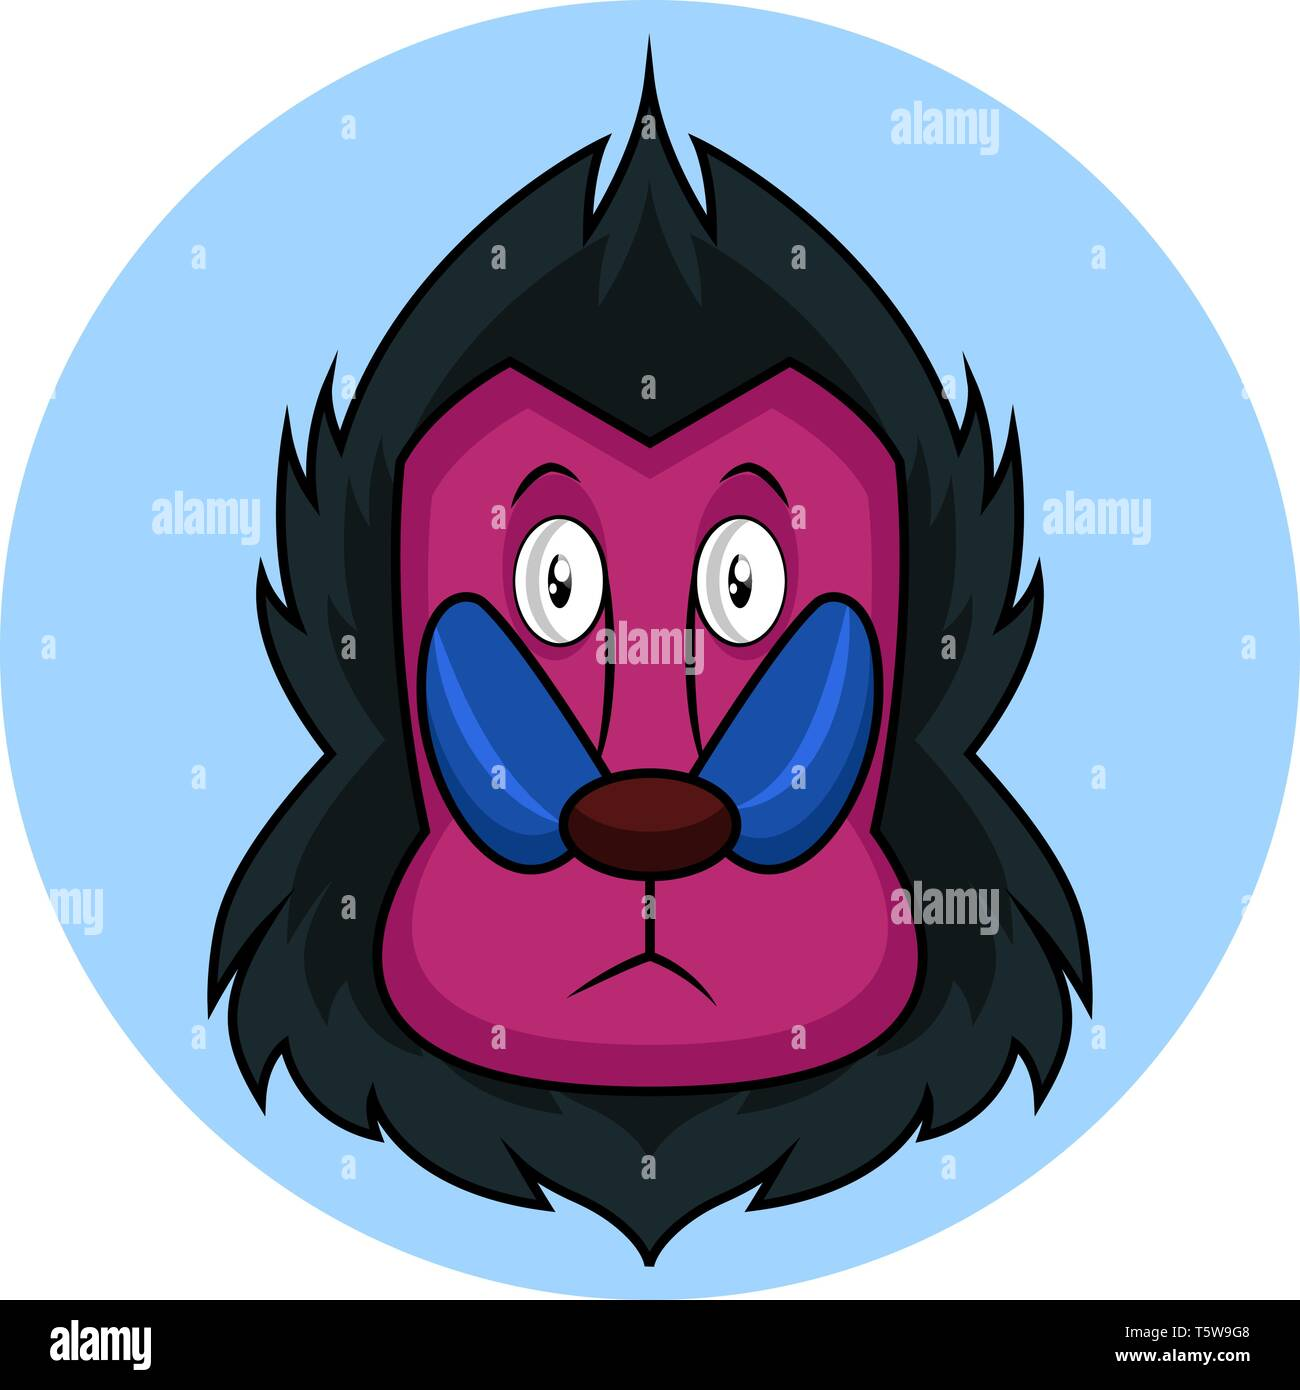 Cartoon monkey with pink face vector illustration on white background - Stock Vector